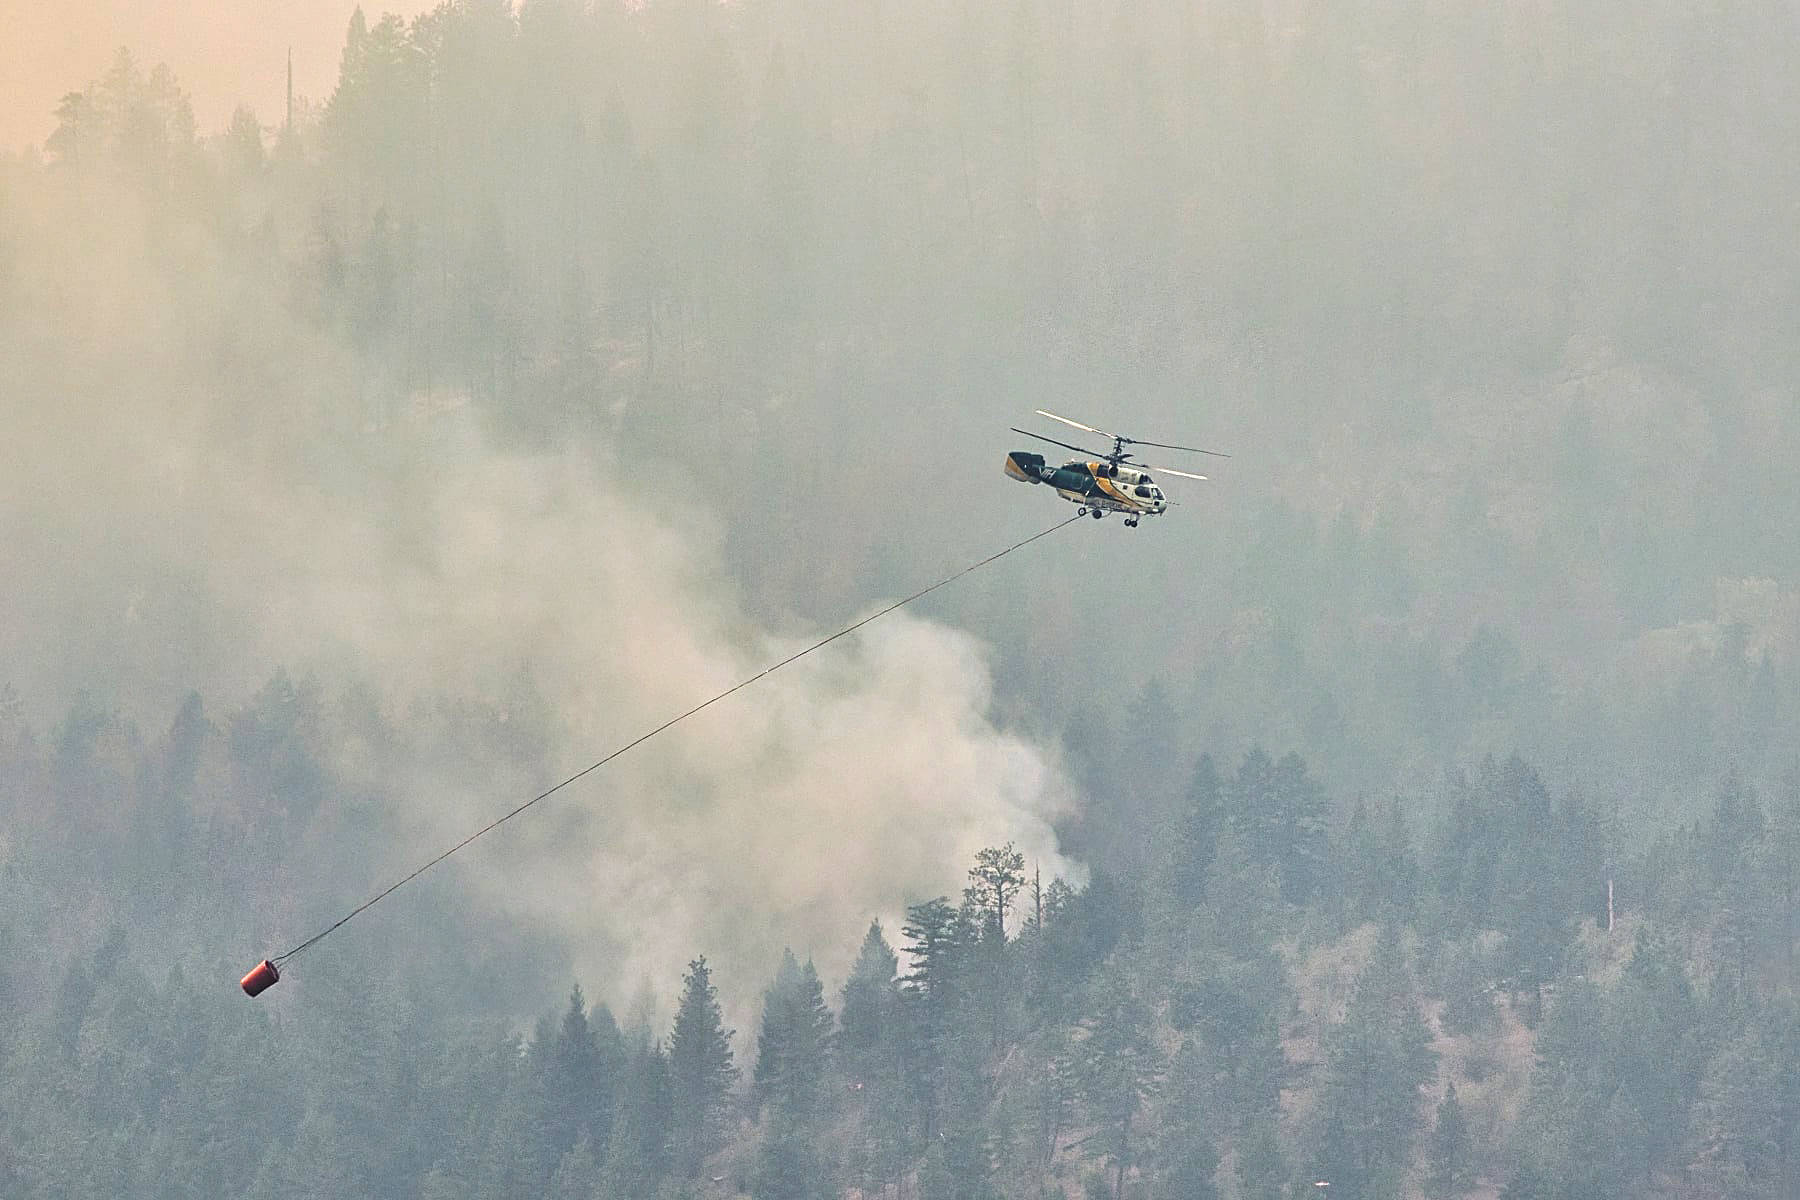 A helicopter buckets water over the White Rock Lake wildfire near Westside on Aug. 10. (Darren Wolf photo)